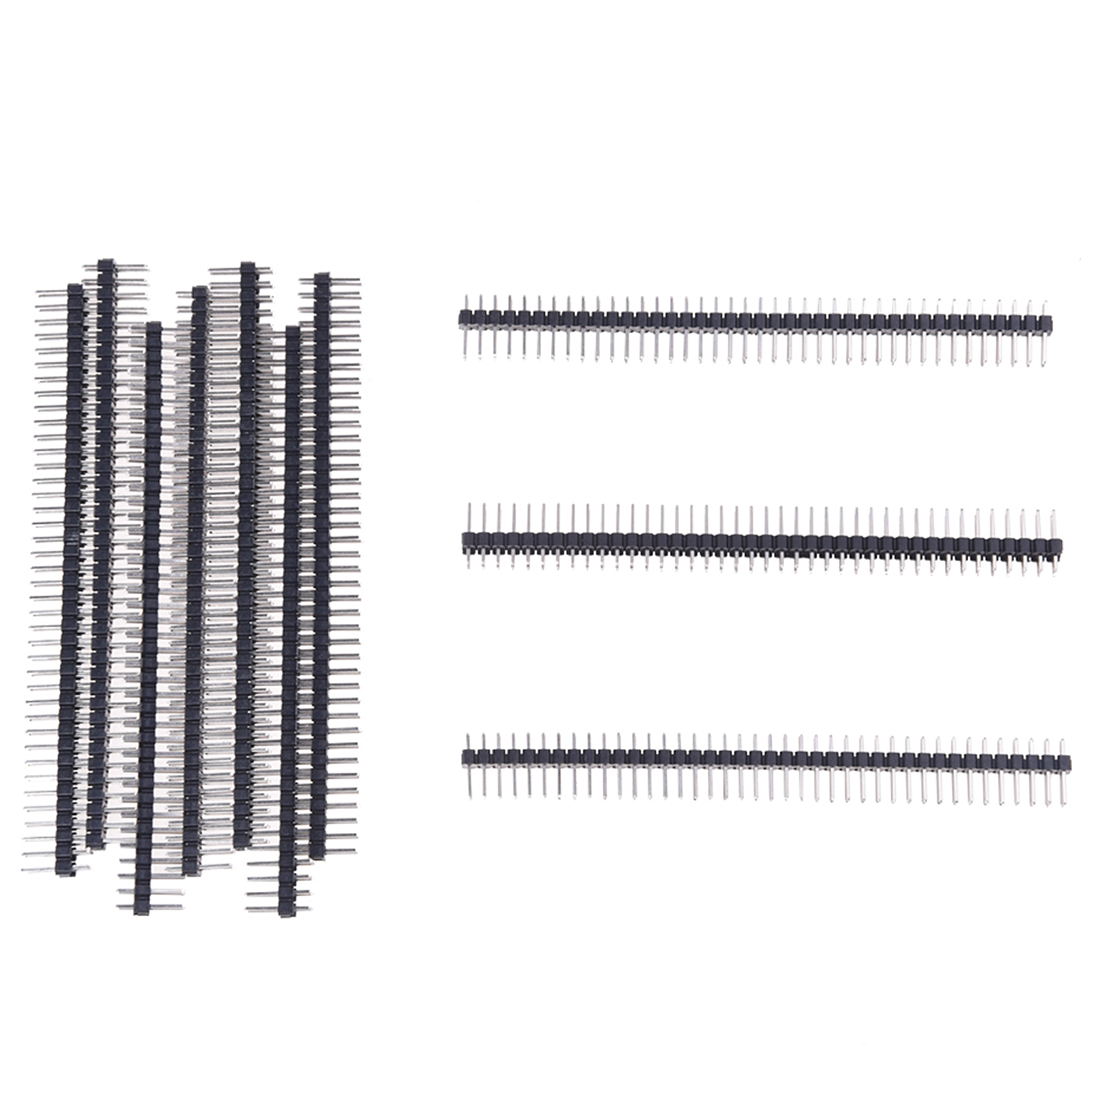 Jfbl Hot 10 Pcs 2x40 Pin 2 54mm Pitch Double Row Pcb Pin